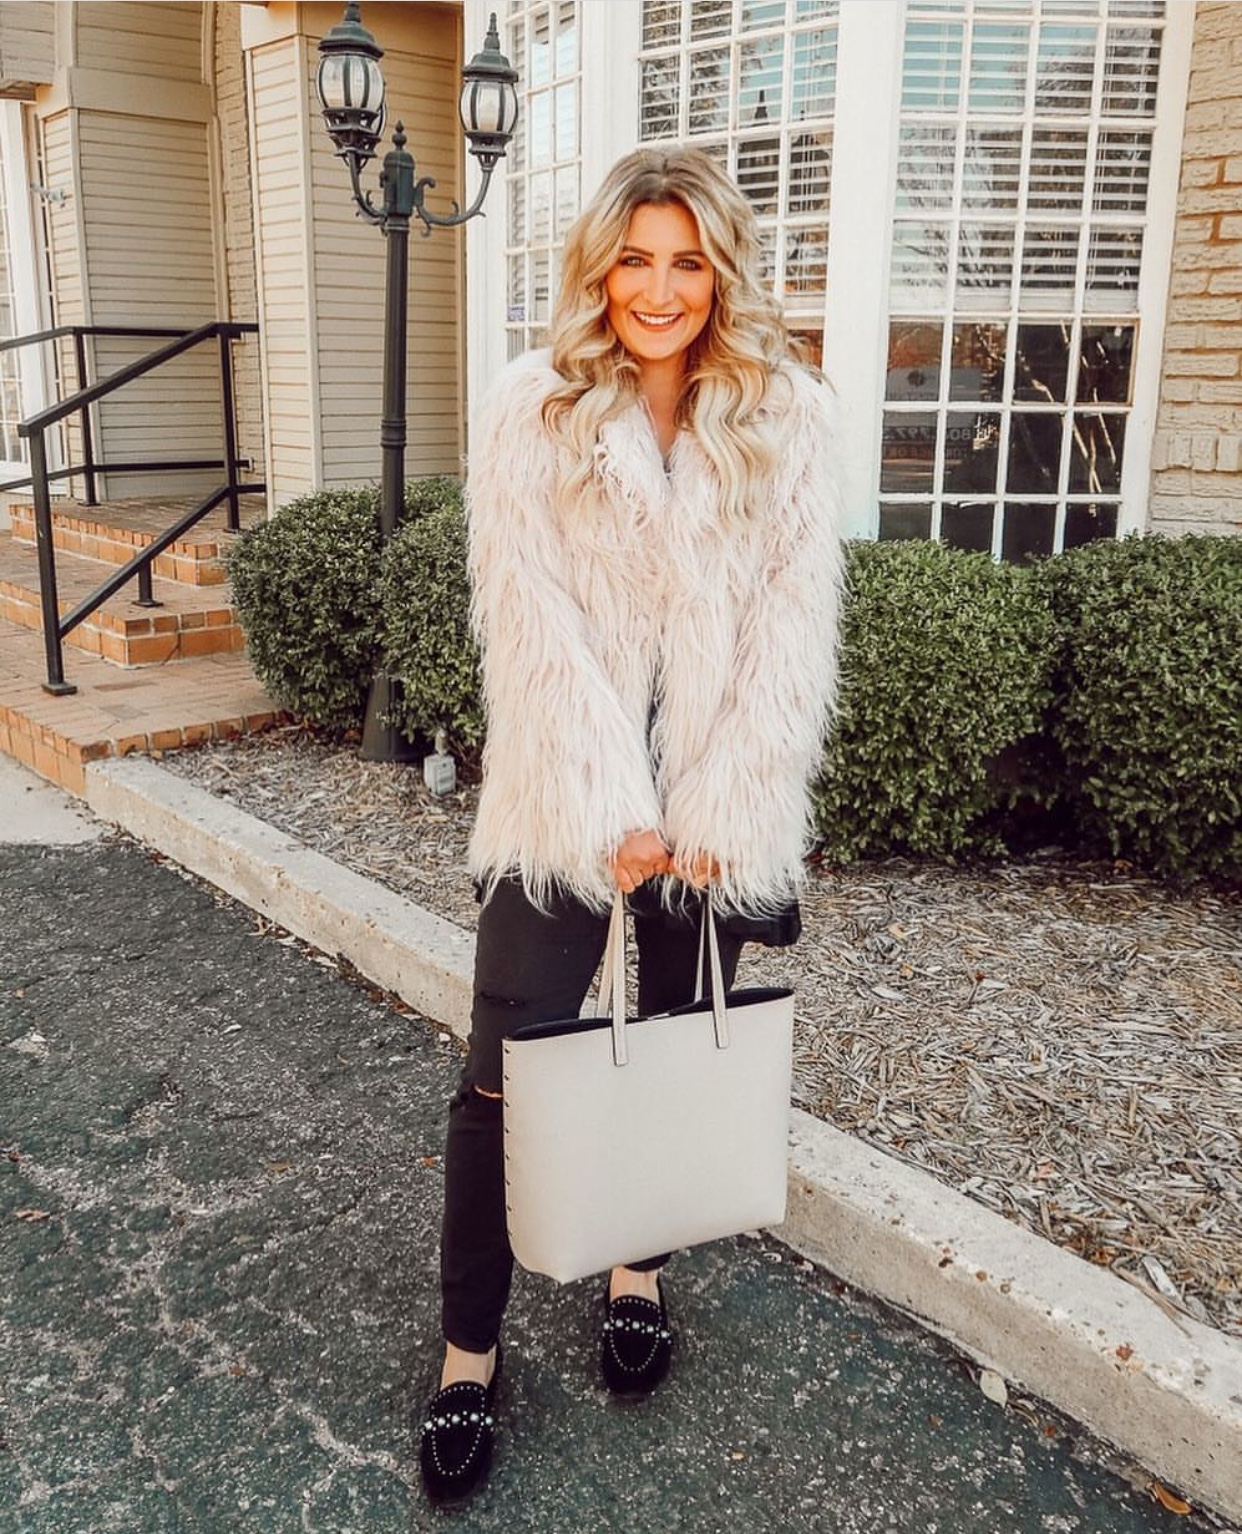 Fur Coat | Audrey Madison Stowe a fashion and lifestyle blogger